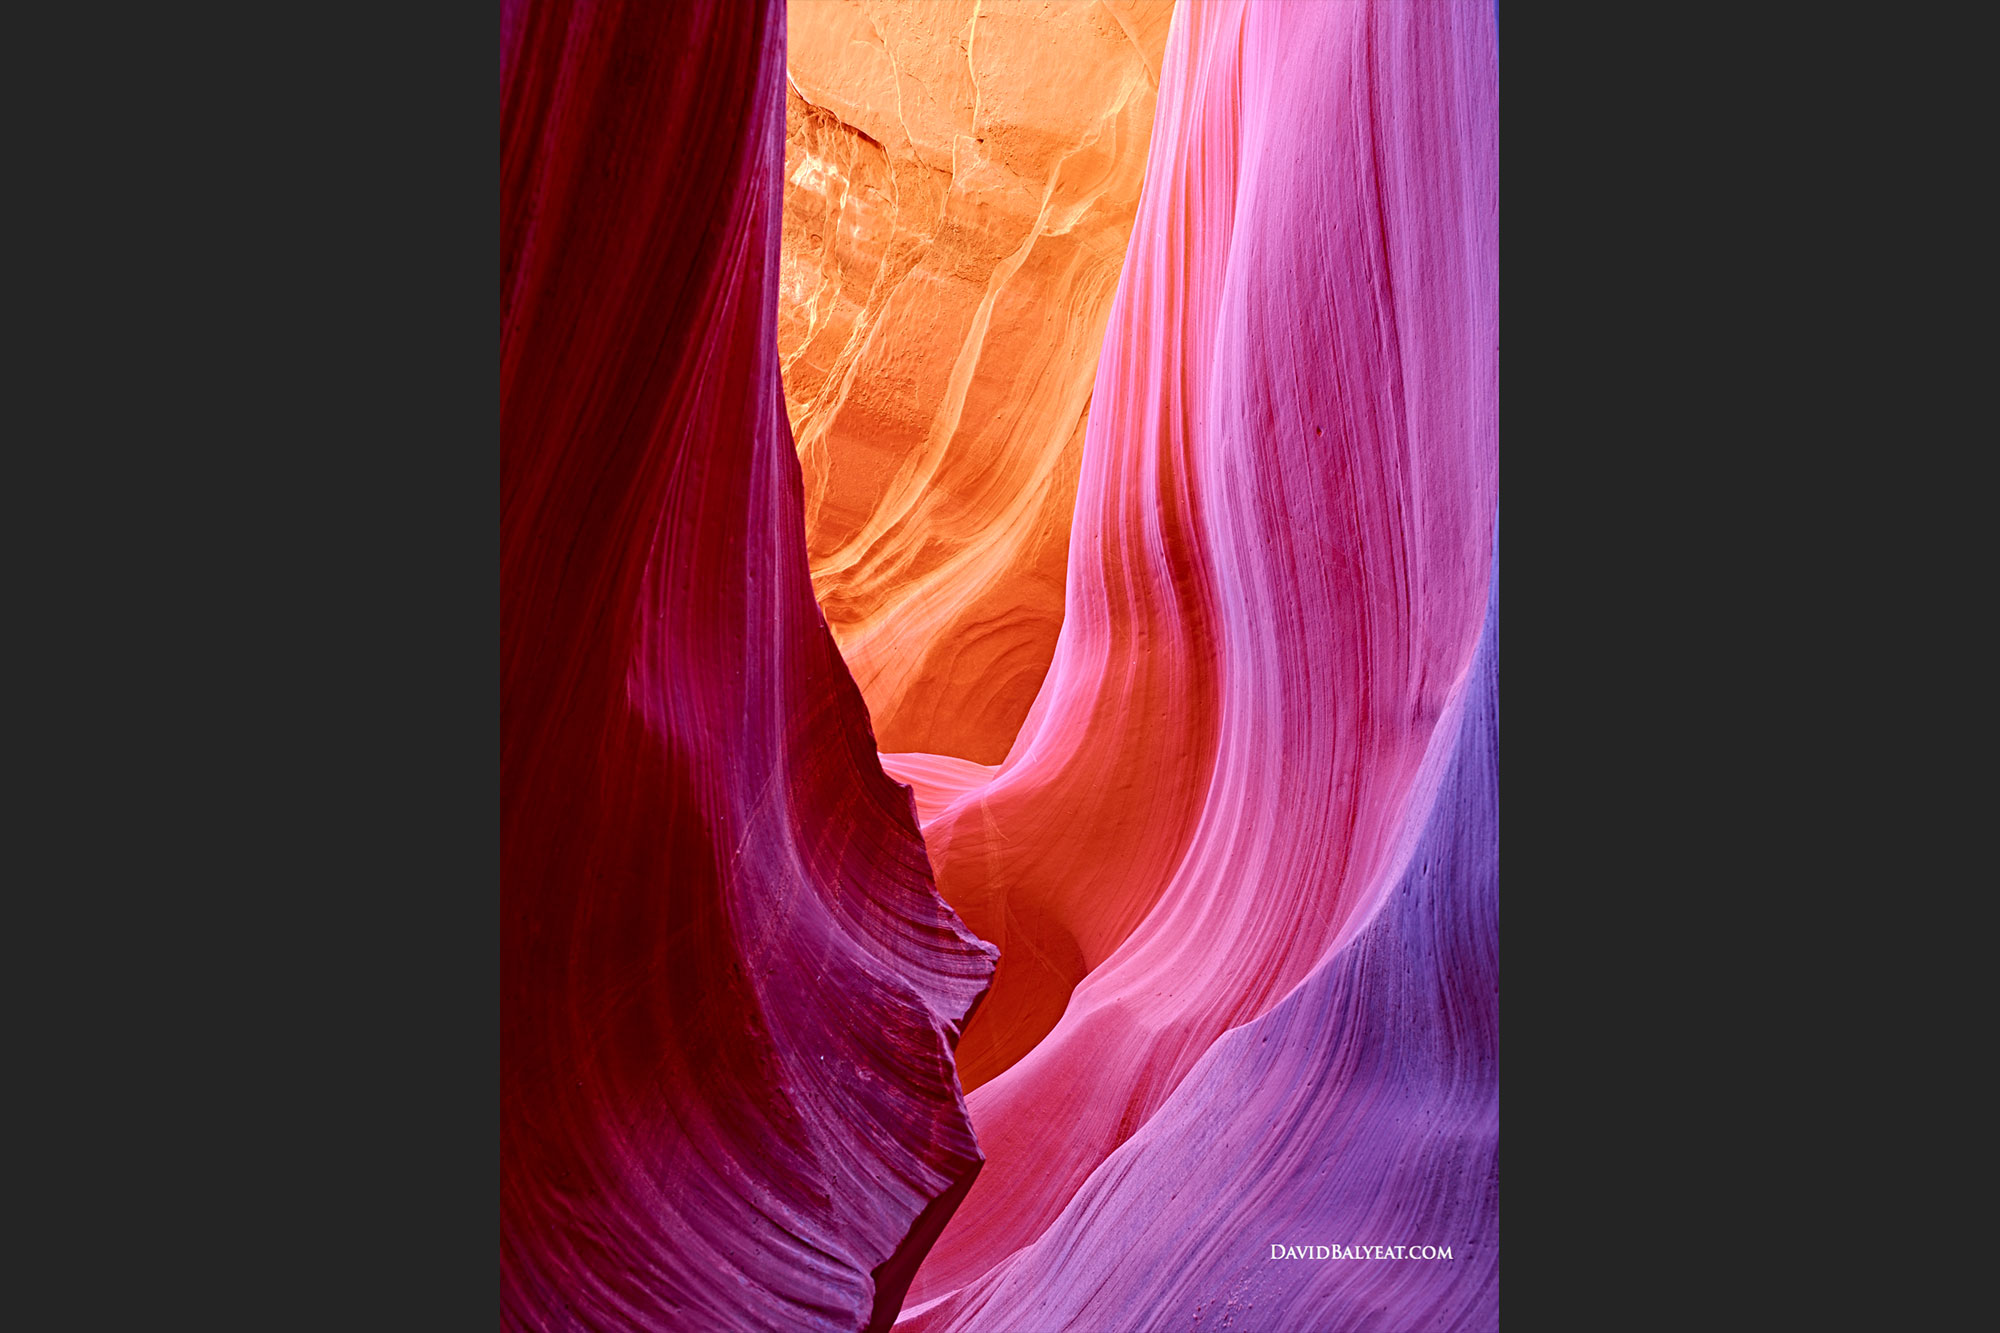 Antelope Canyons abstract rock formations Arizona high defintion HD professional photography